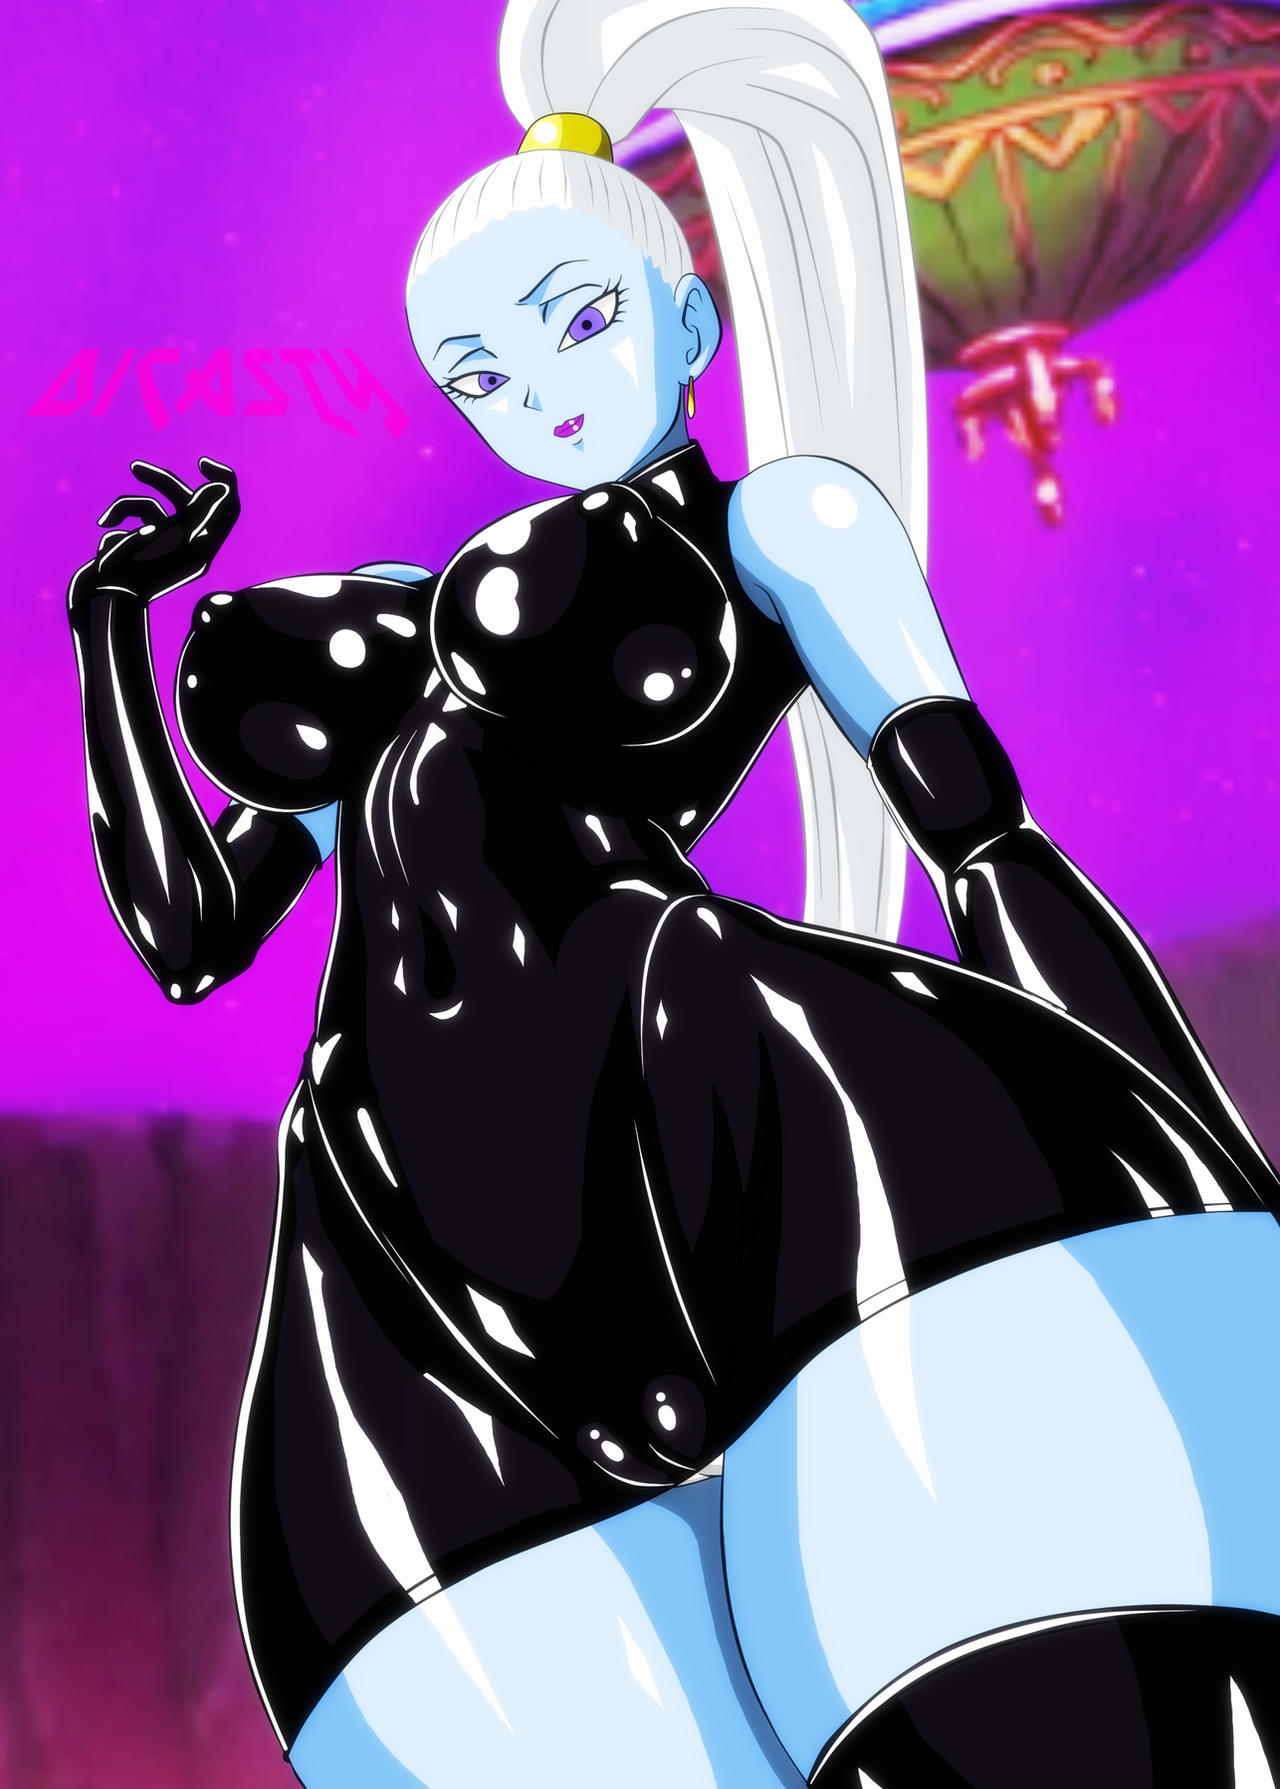 Vados By Dicasty1 On Deviantart-2001